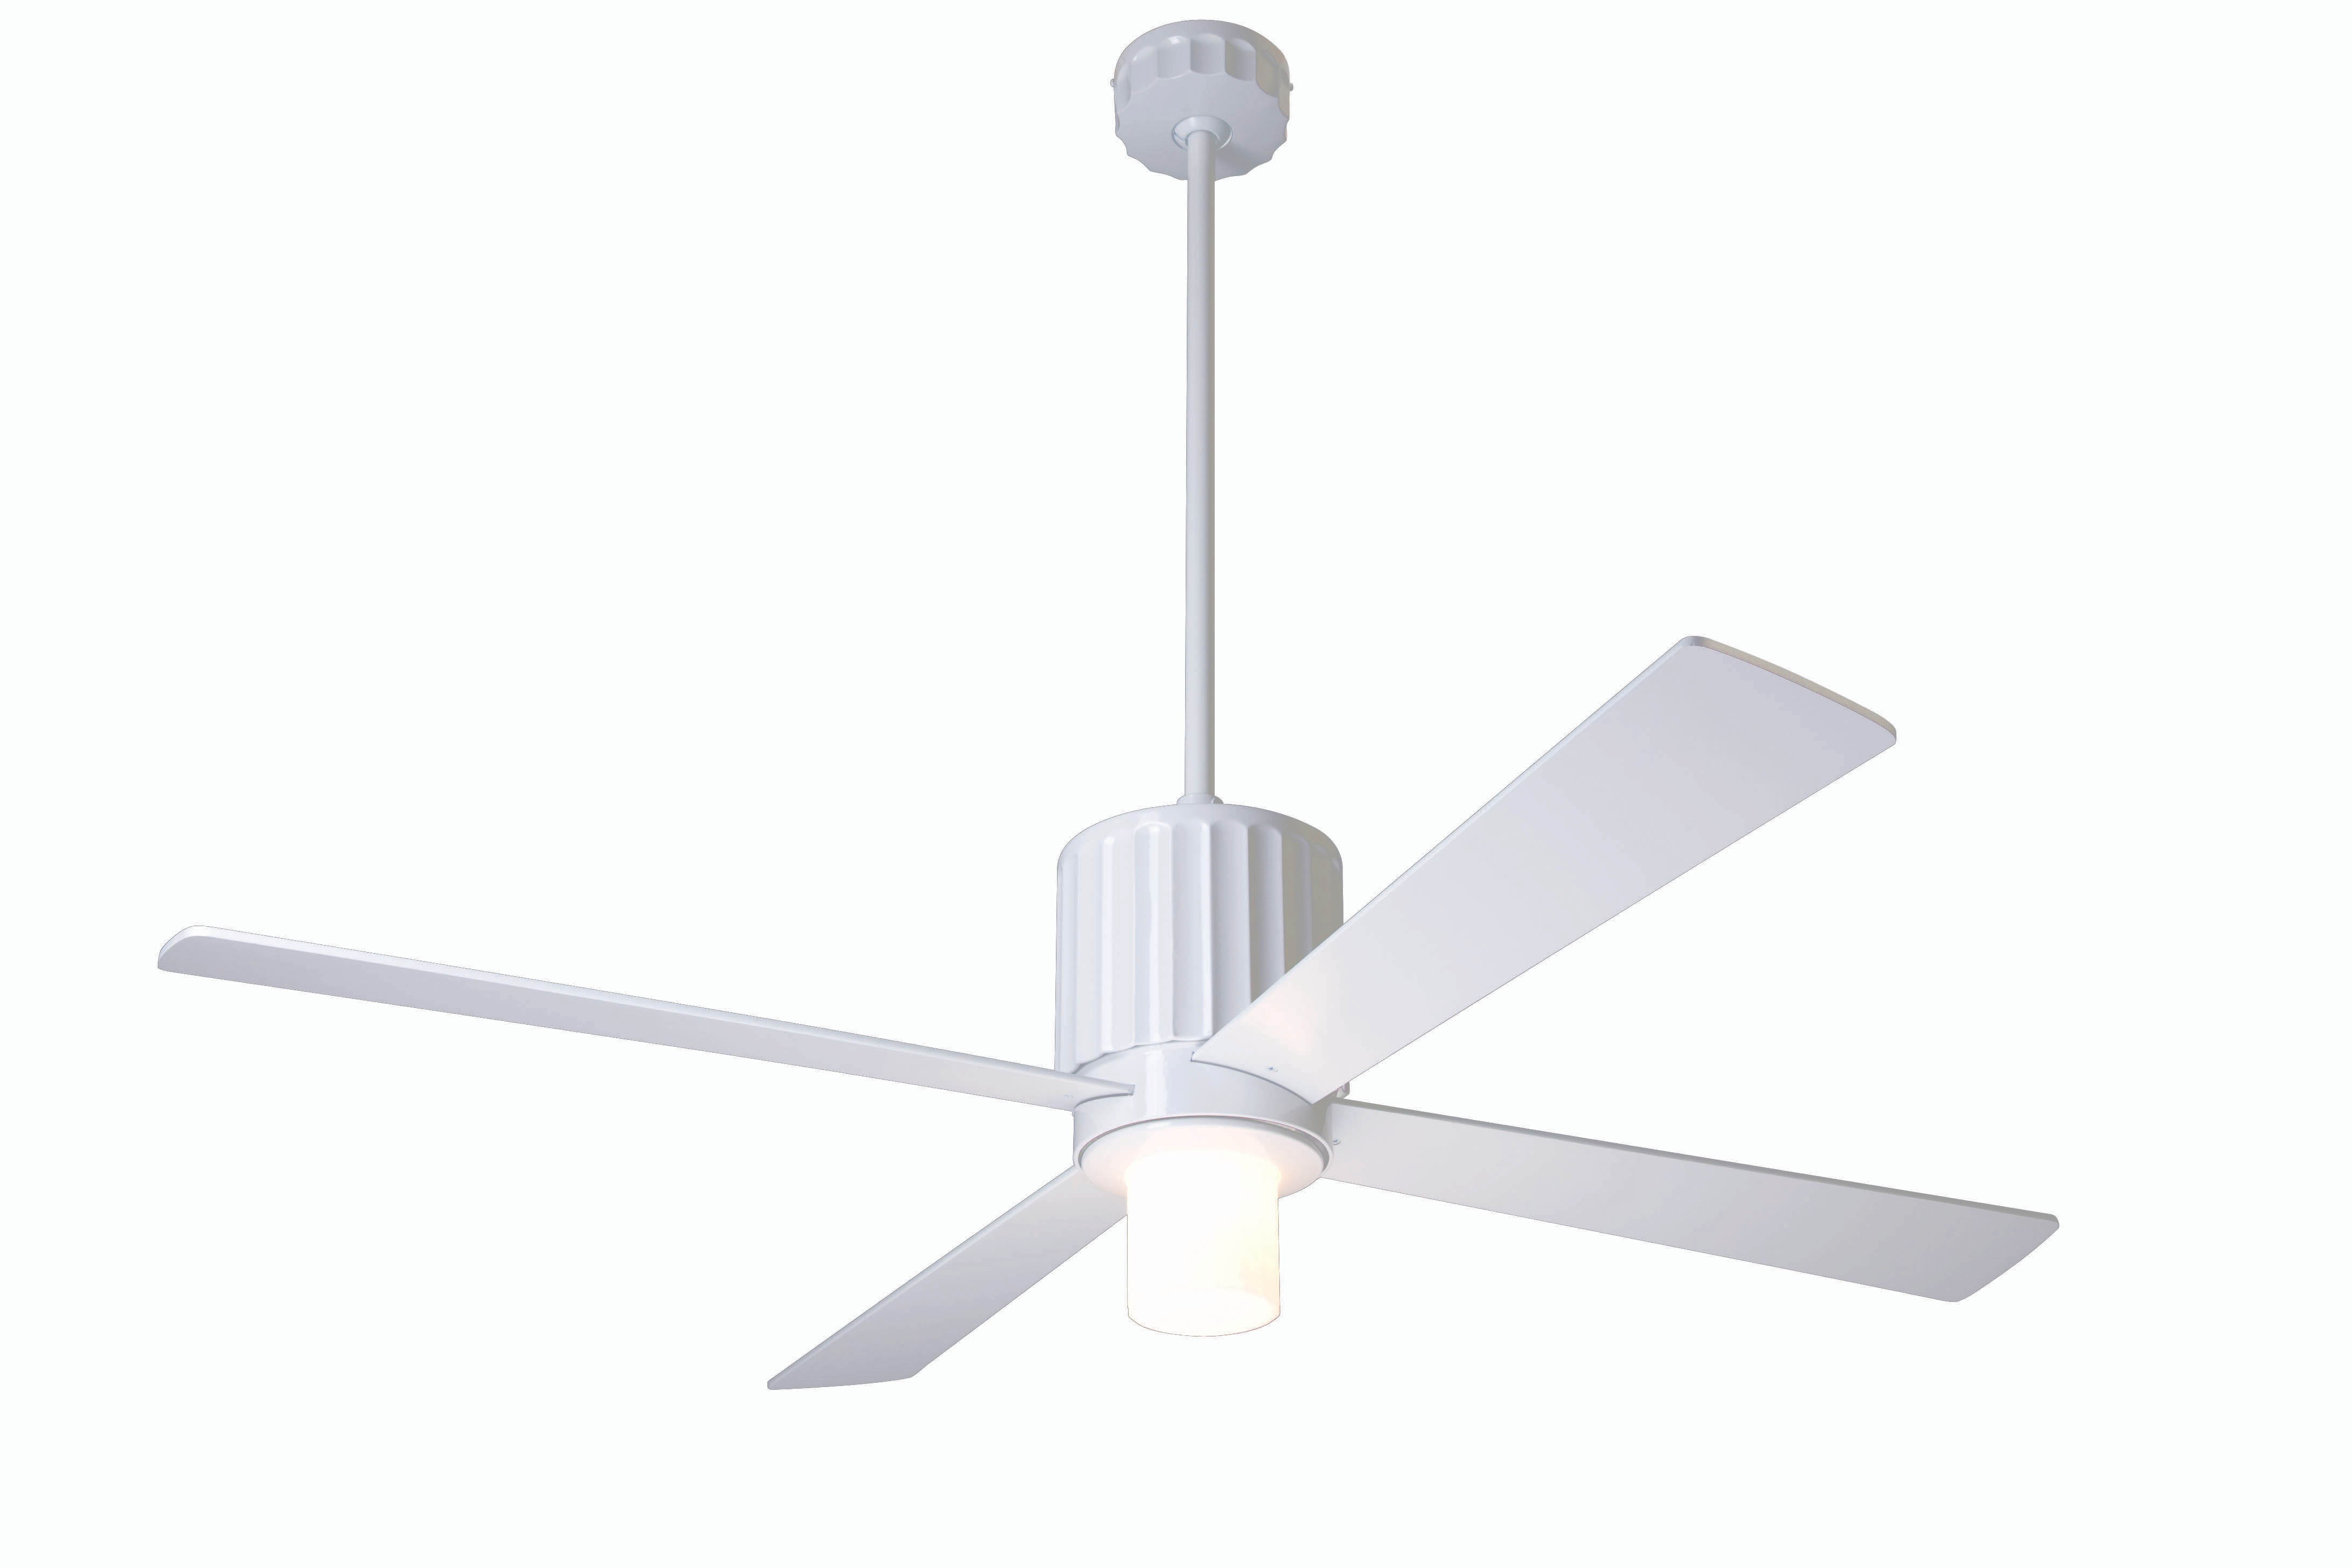 Modern fan company flu gw 42 wh 750 005 flute gloss white ceiling fan - Modern white ceiling fan ...